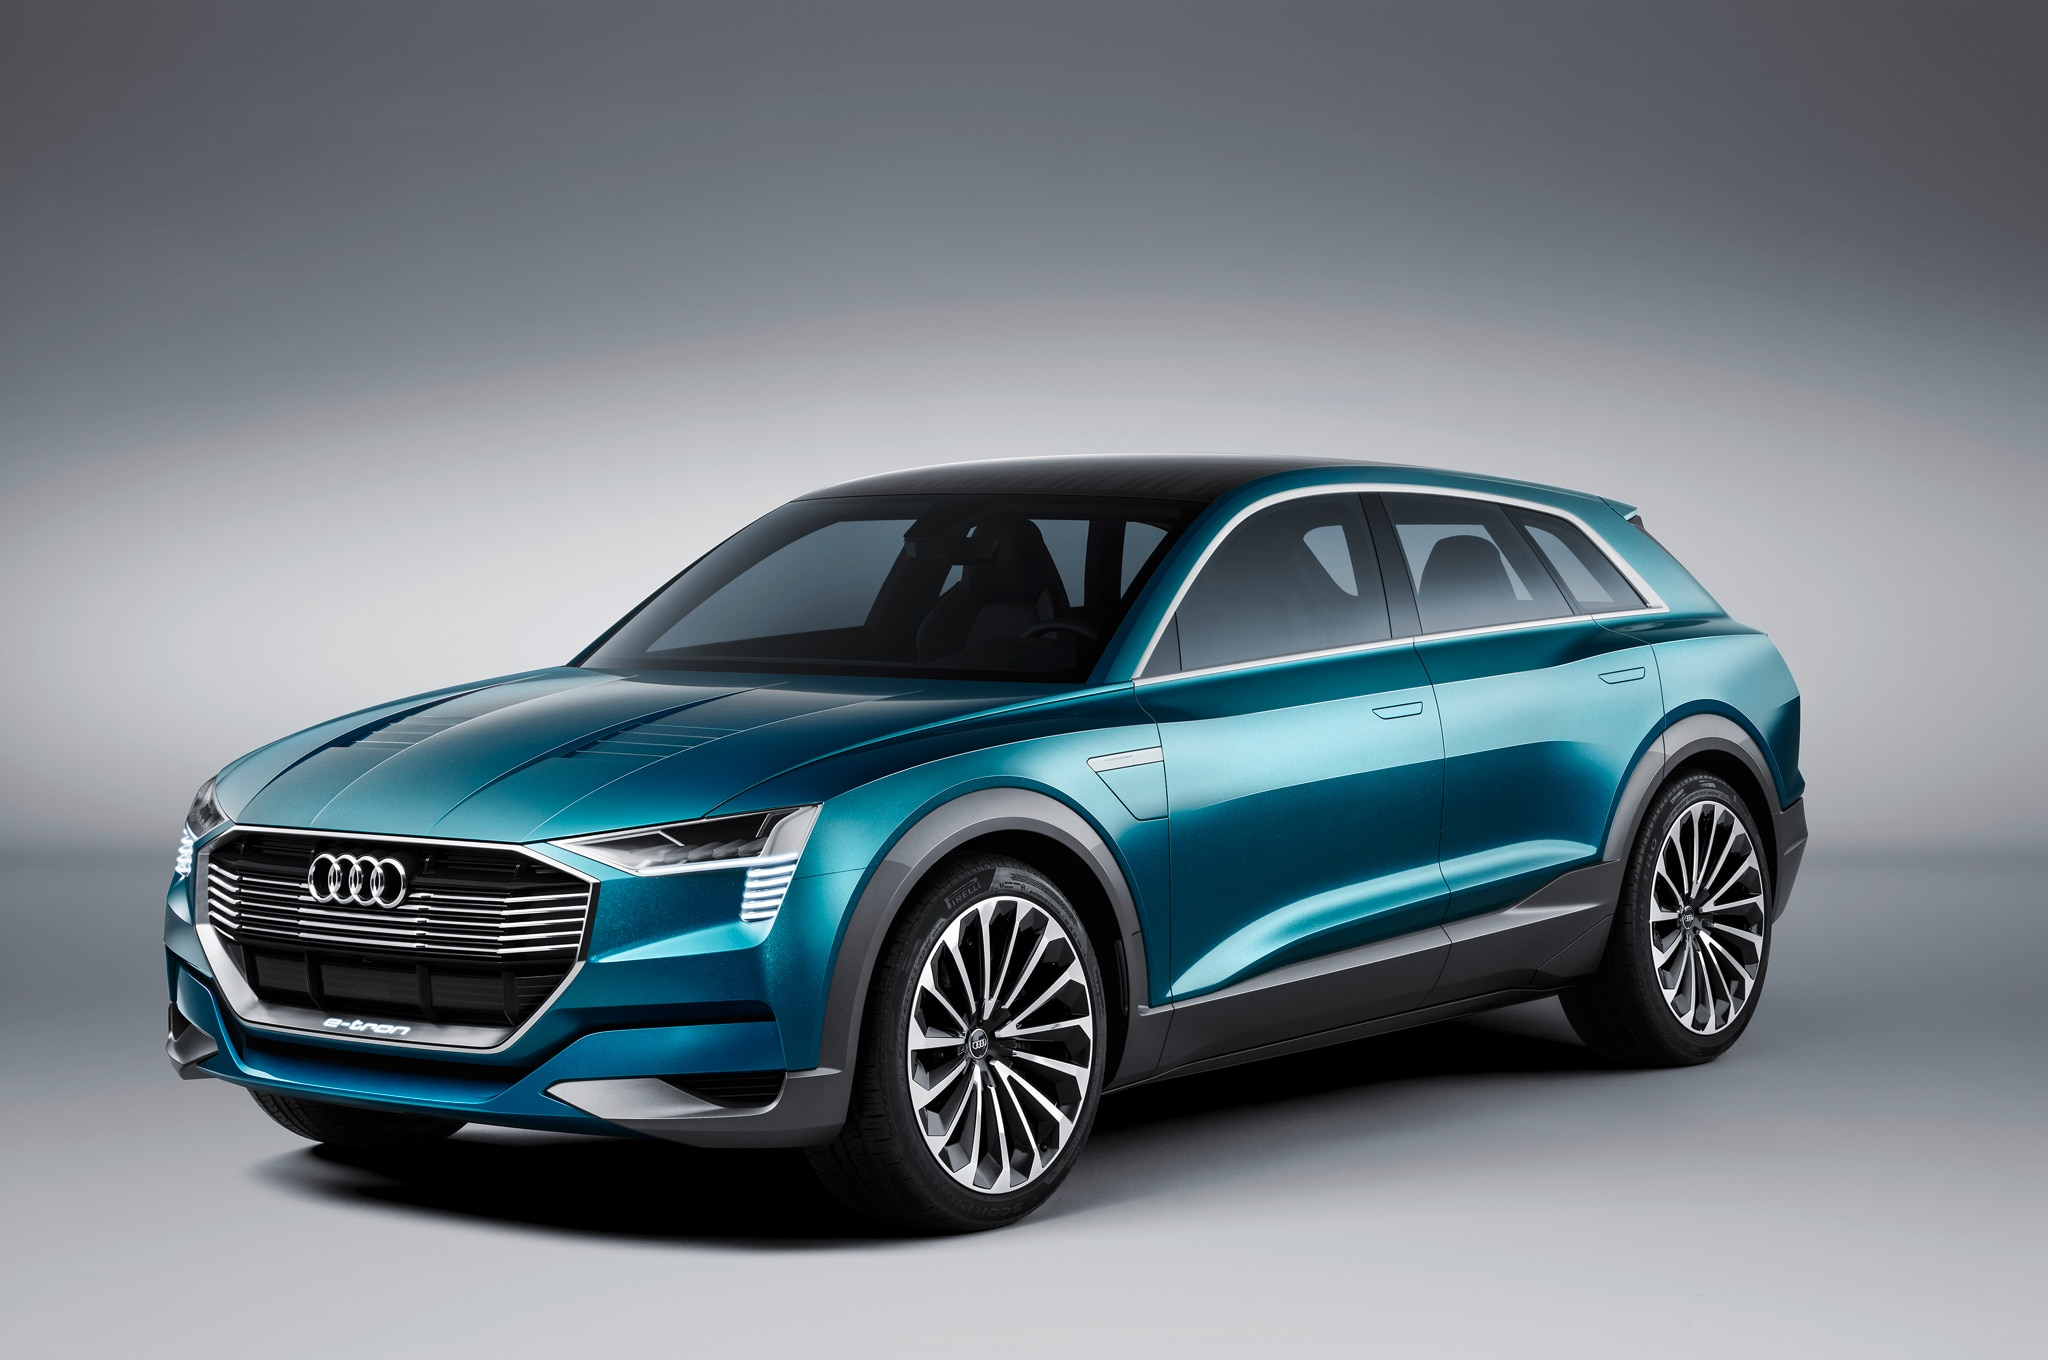 2018 audi electric suv. unique audi show more throughout 2018 audi electric suv